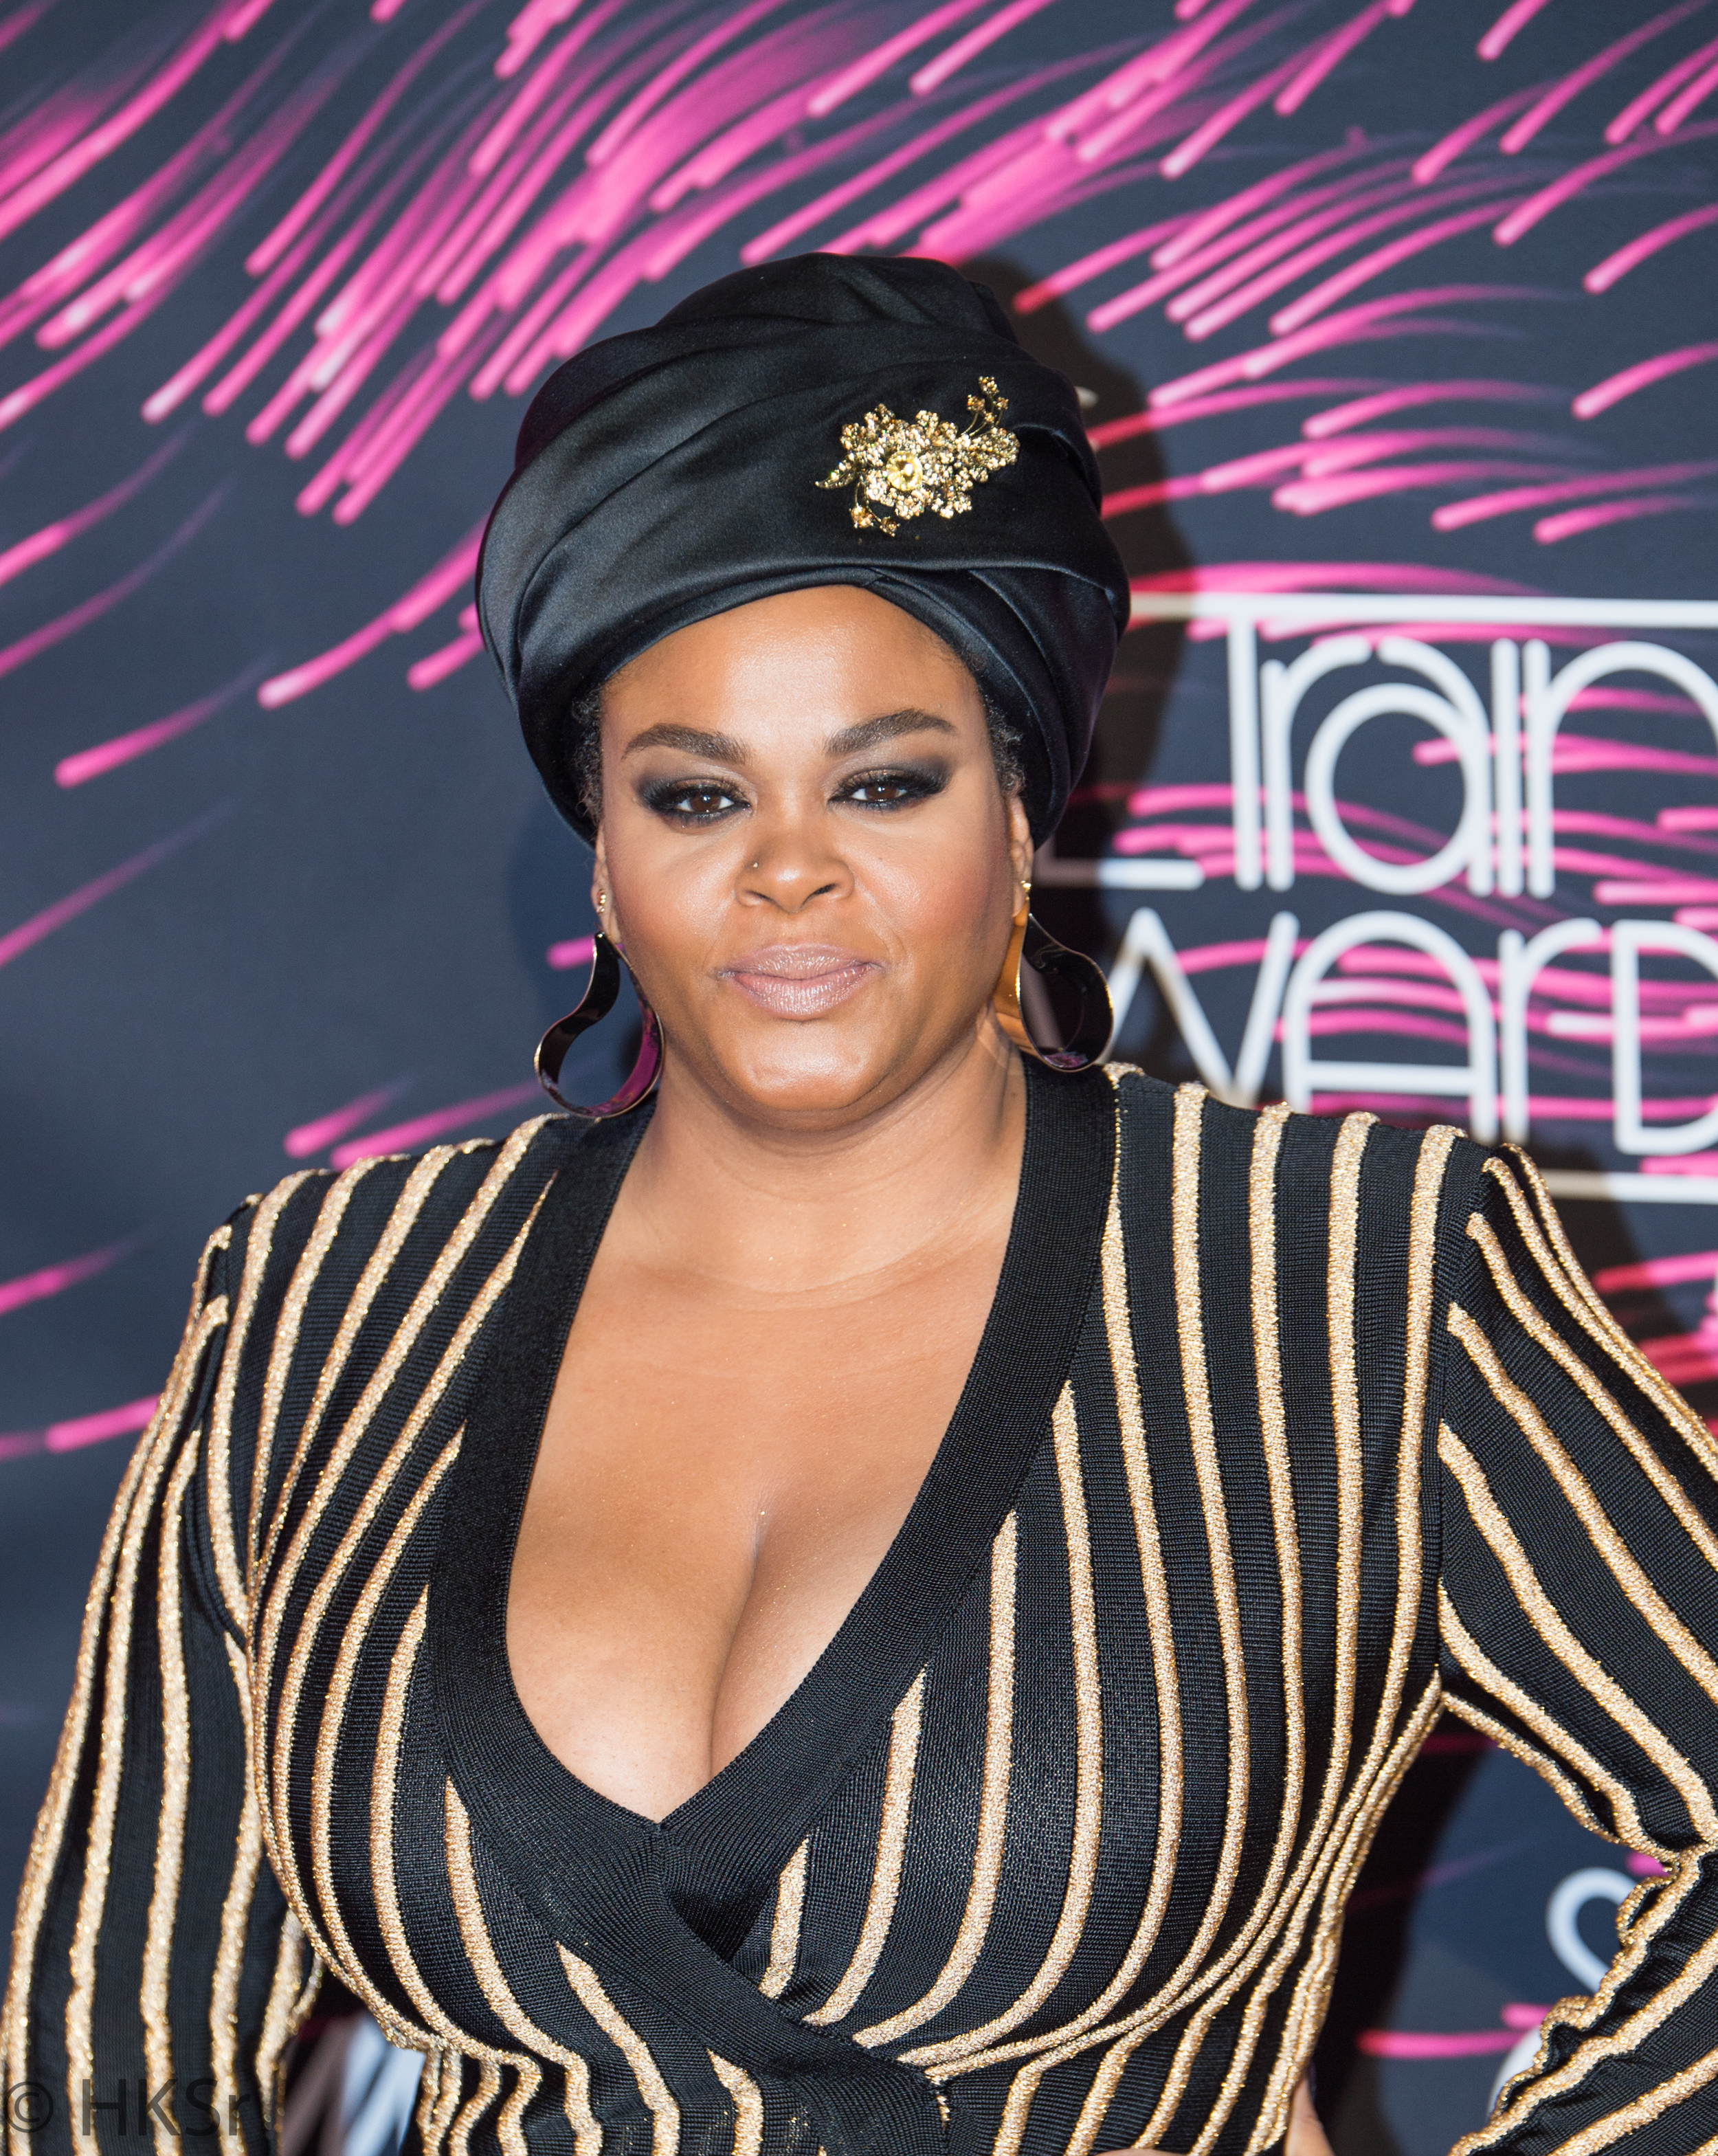 Jill Scott will receive the LADY OF SOUL AWARD at the Soul Train Awards